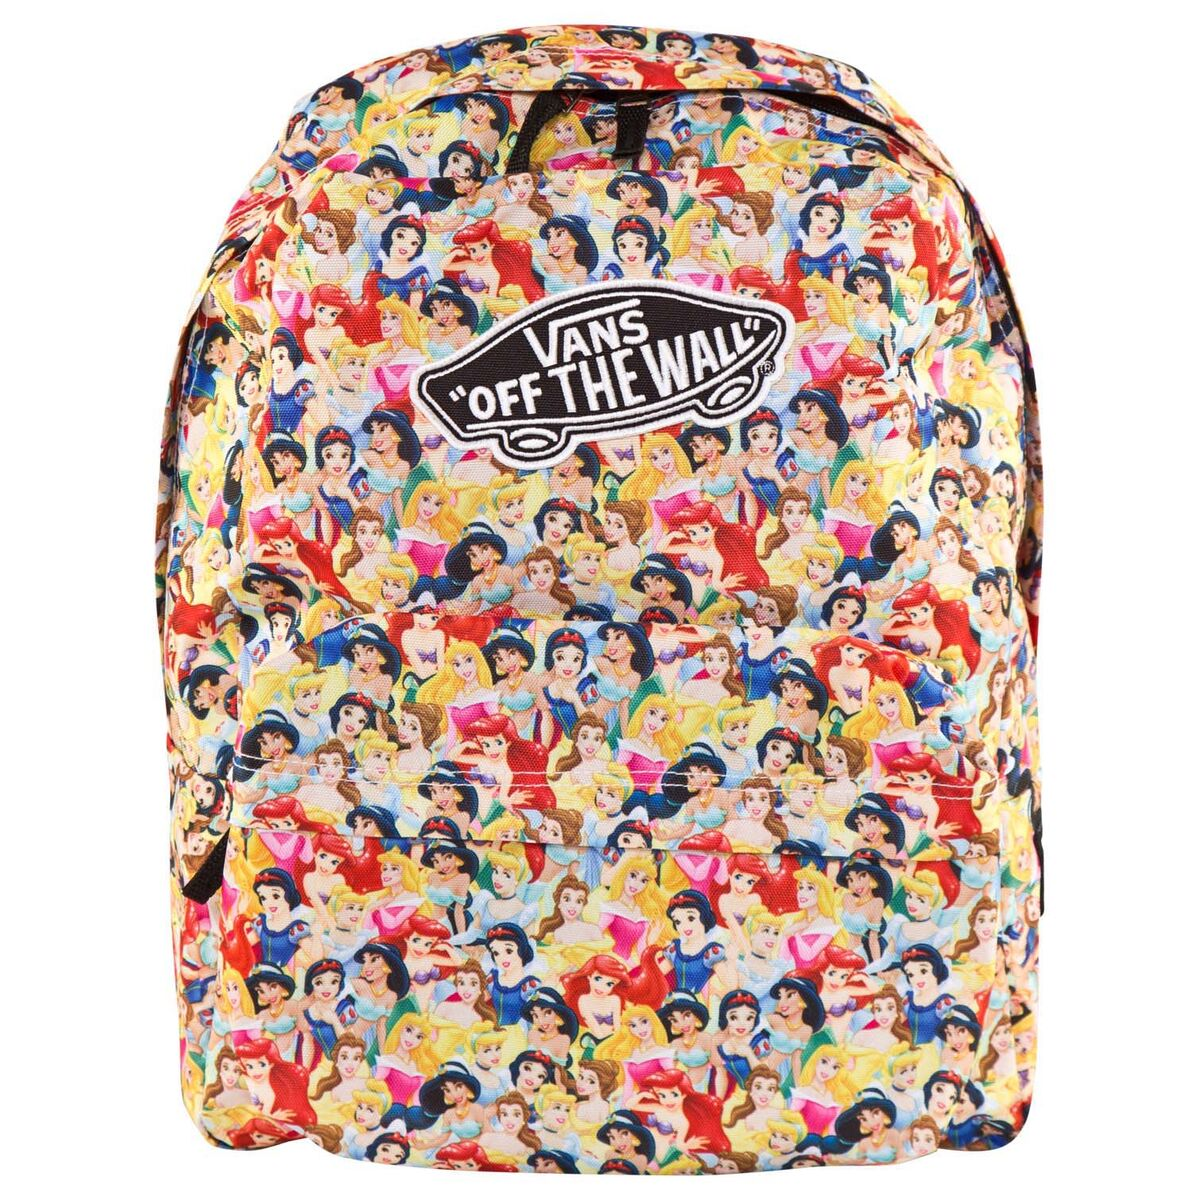 392063f7a649 Vans disney princess backpack alexandalexa jpg 1200x1200 Vans princess  backpack